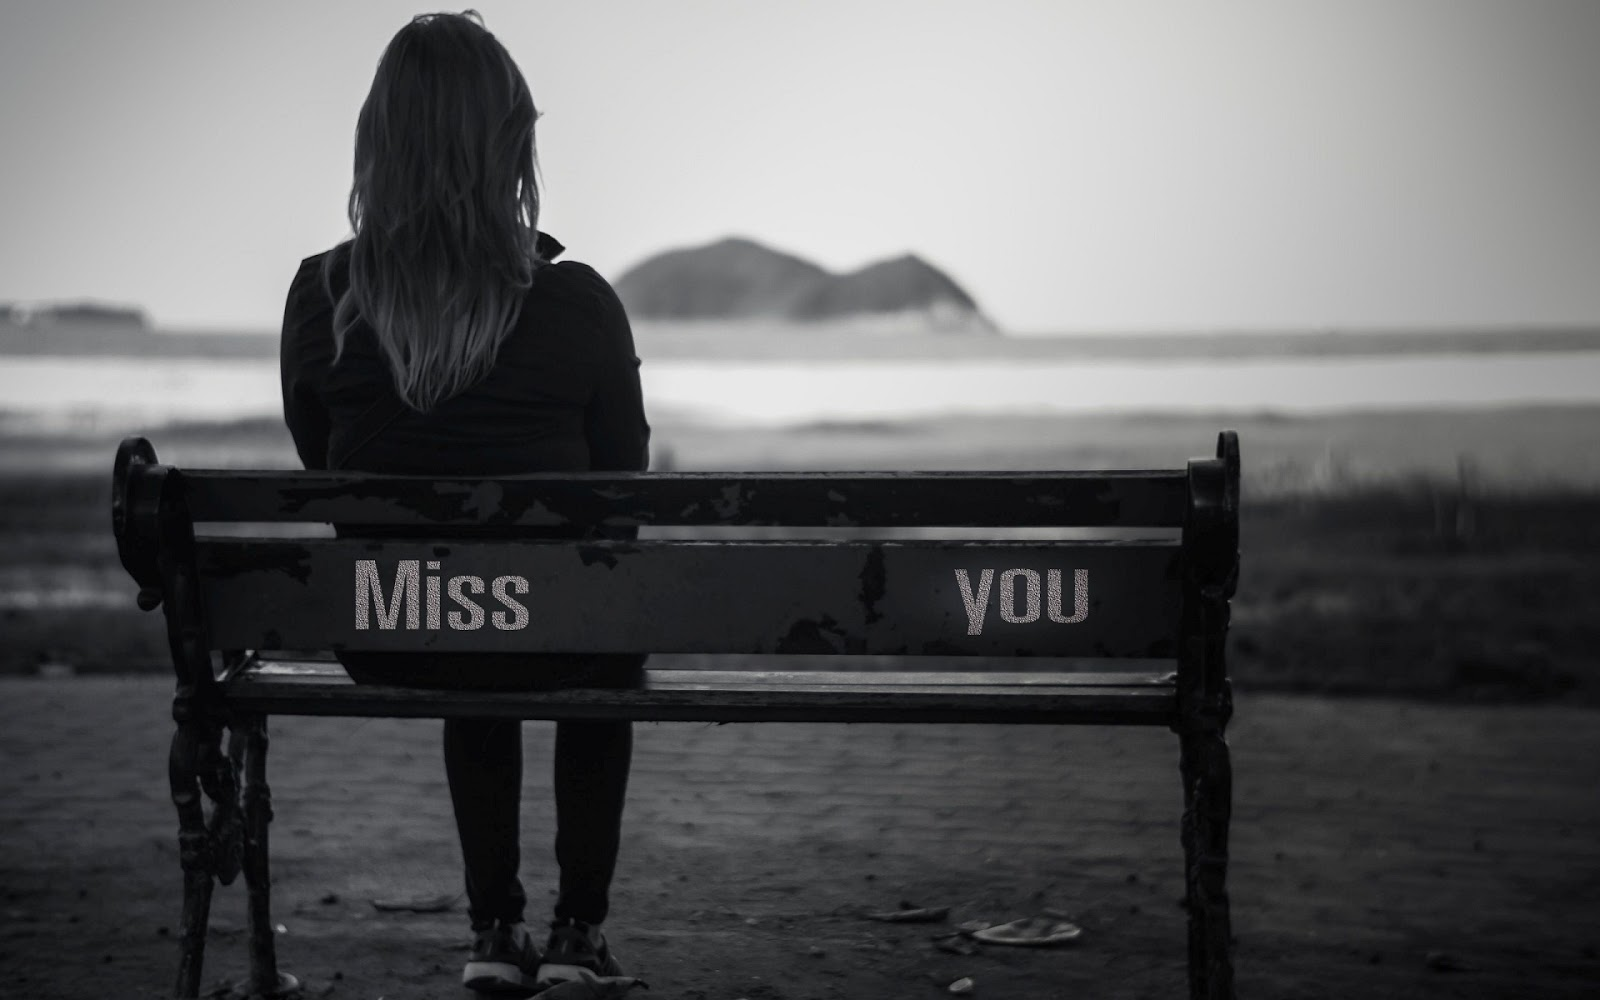 I Miss You Image HD Girl waiting for Her Lover